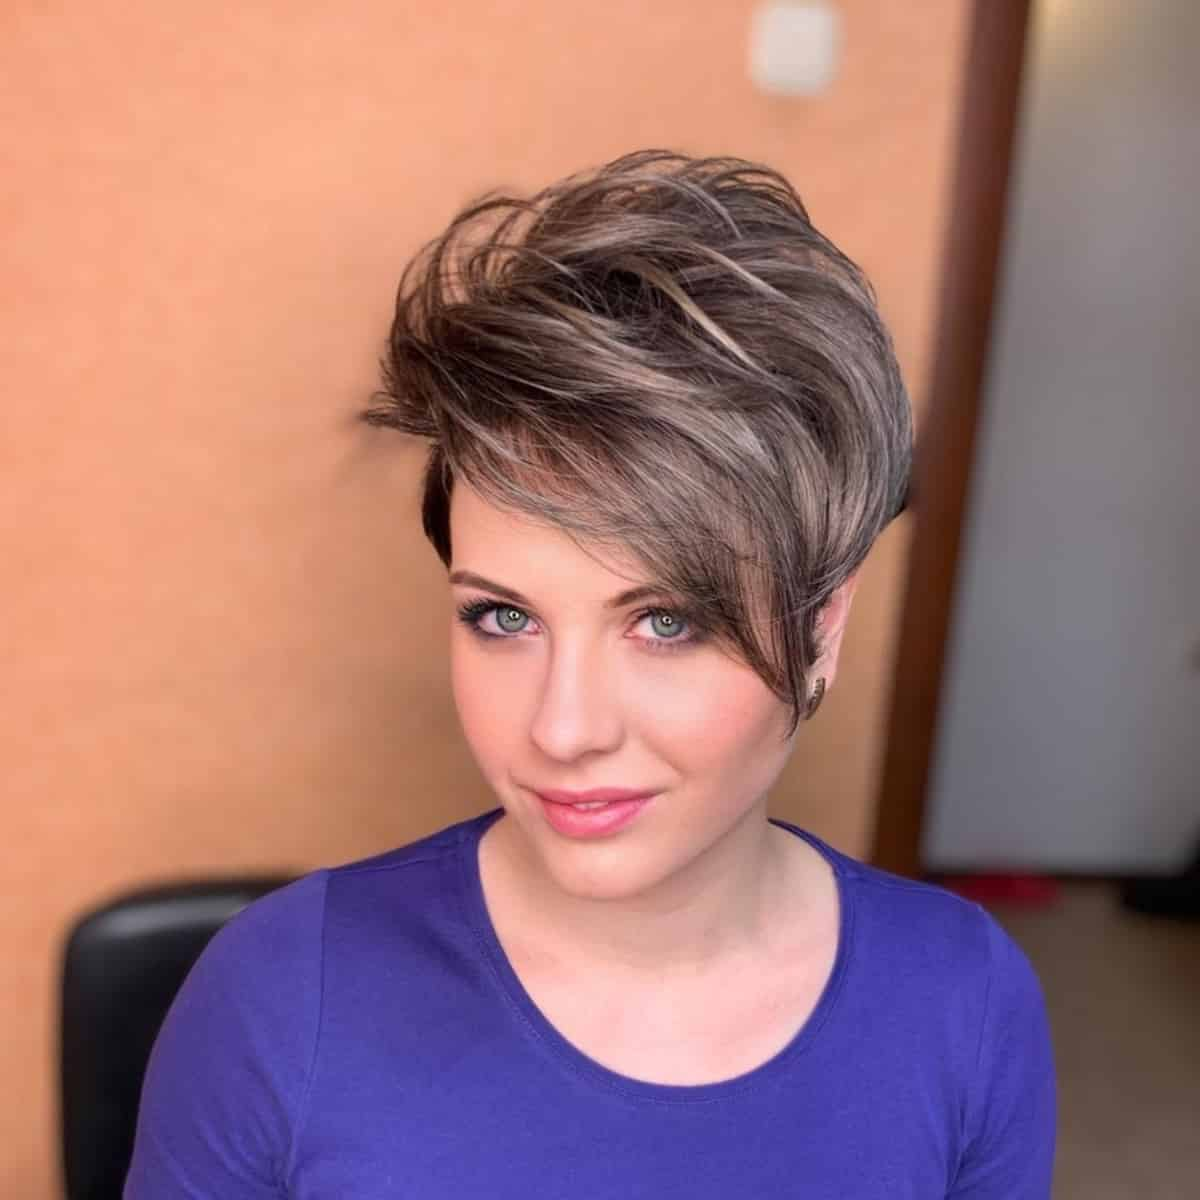 Wavy Long Pixie with Bangs